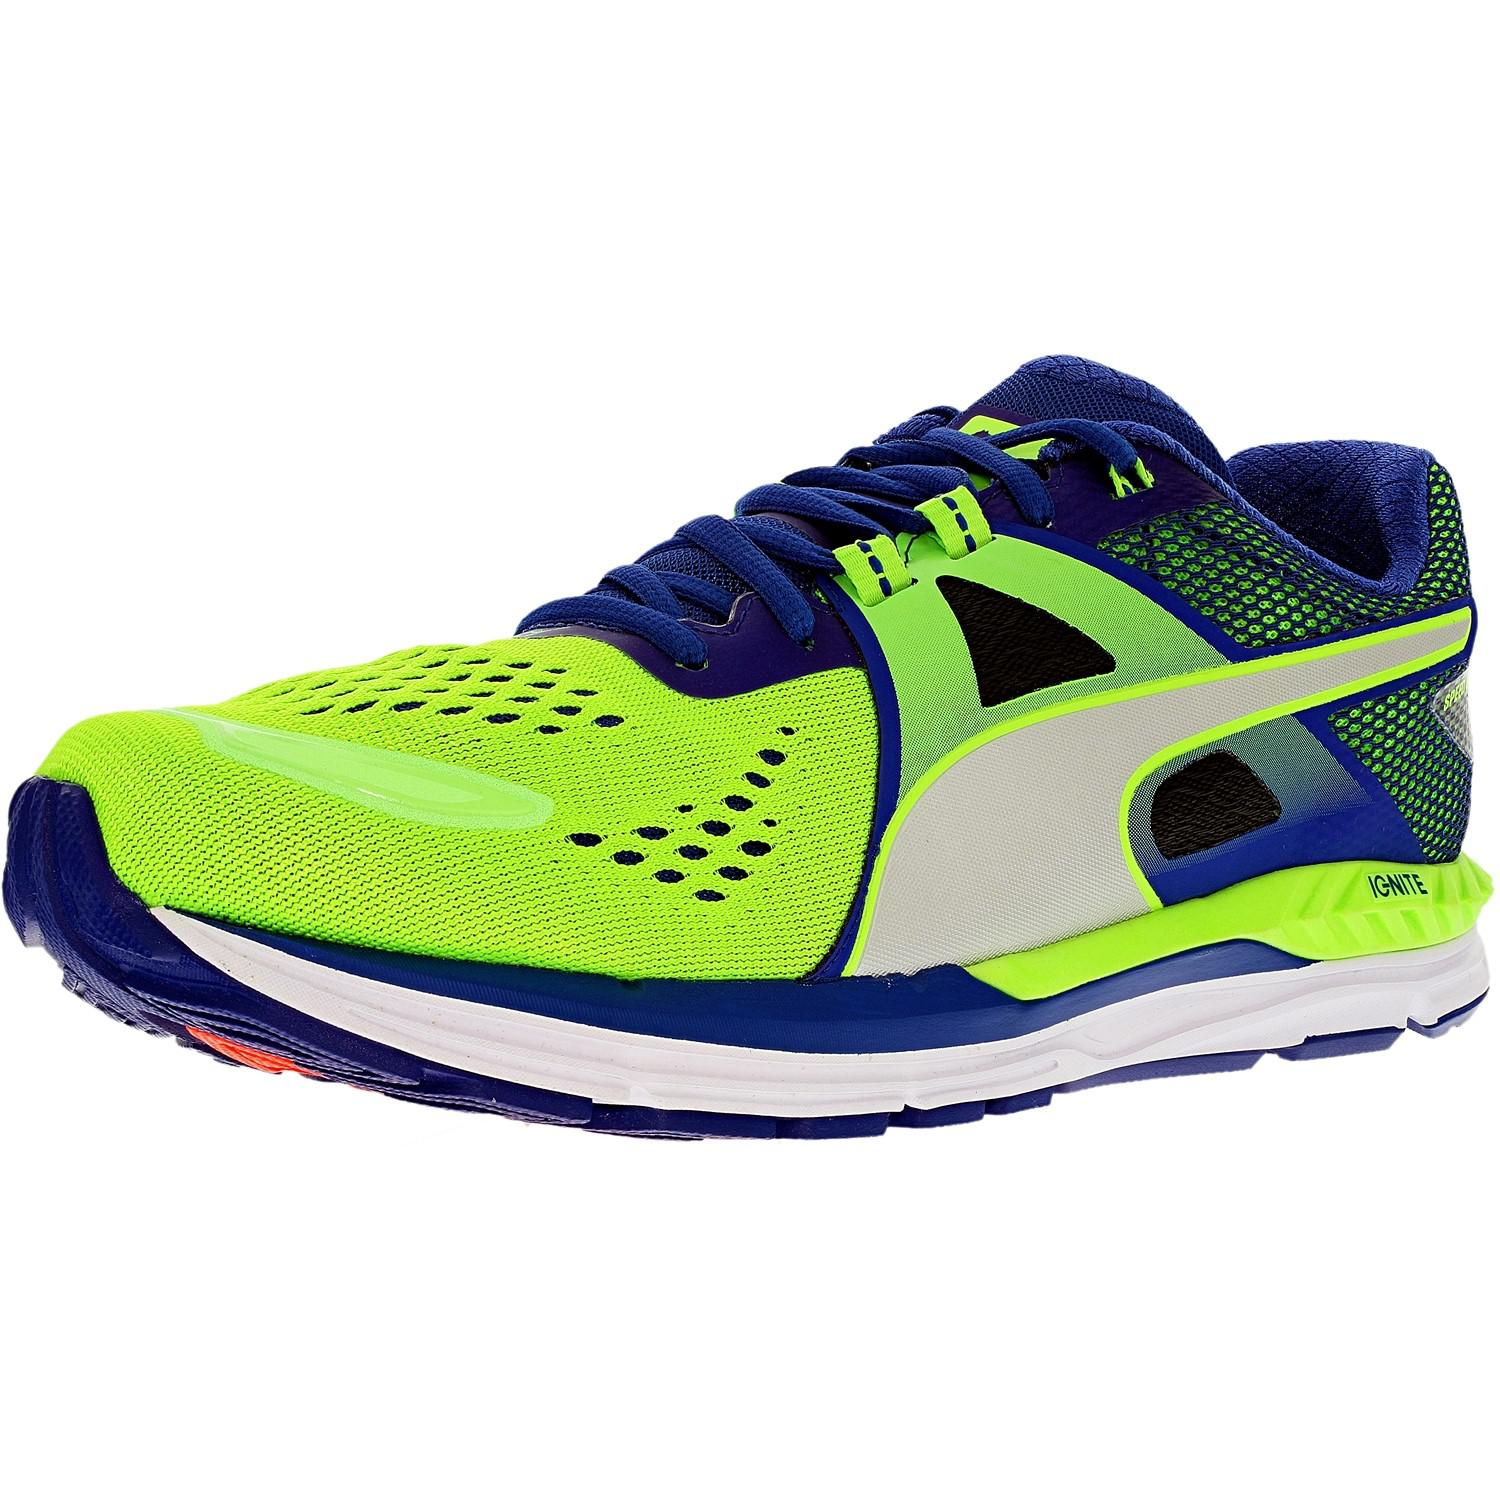 e8b37d0ebf9d51 Lyst - Puma Speed 600 Ignite Green Gecko surf silver Ankle-high ...